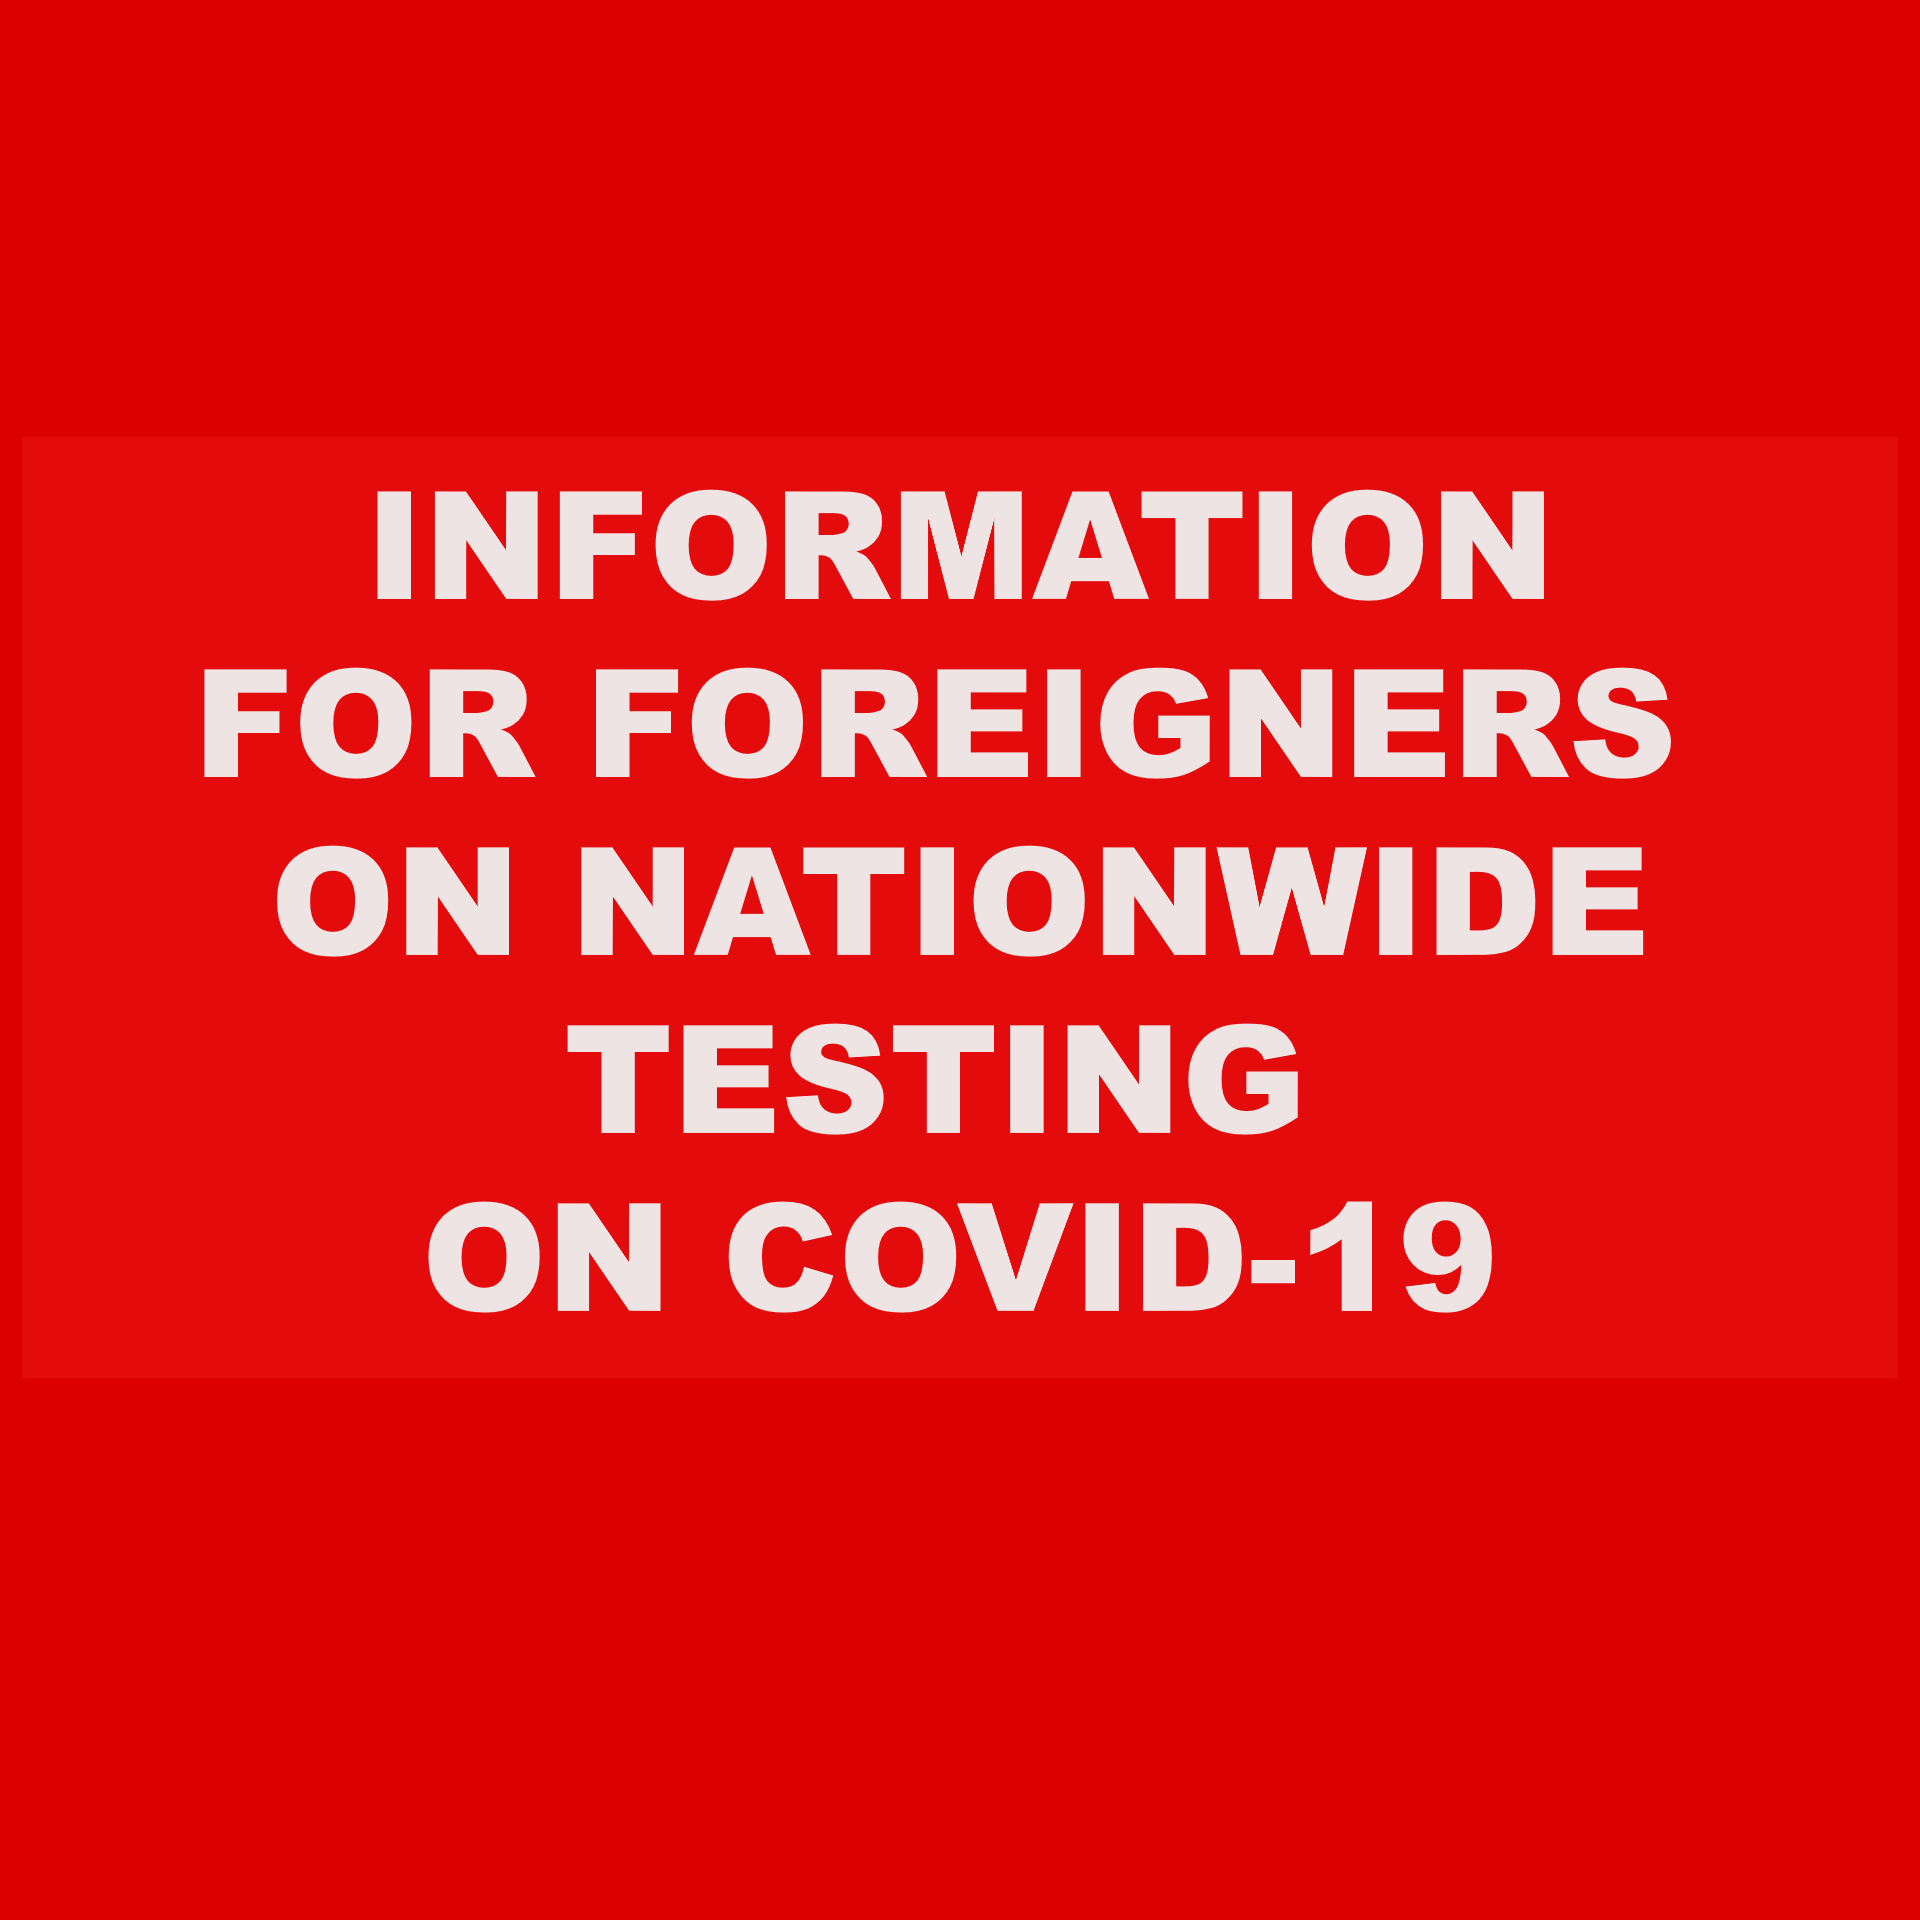 Information for foreigners on nationwide testing on COVID-19